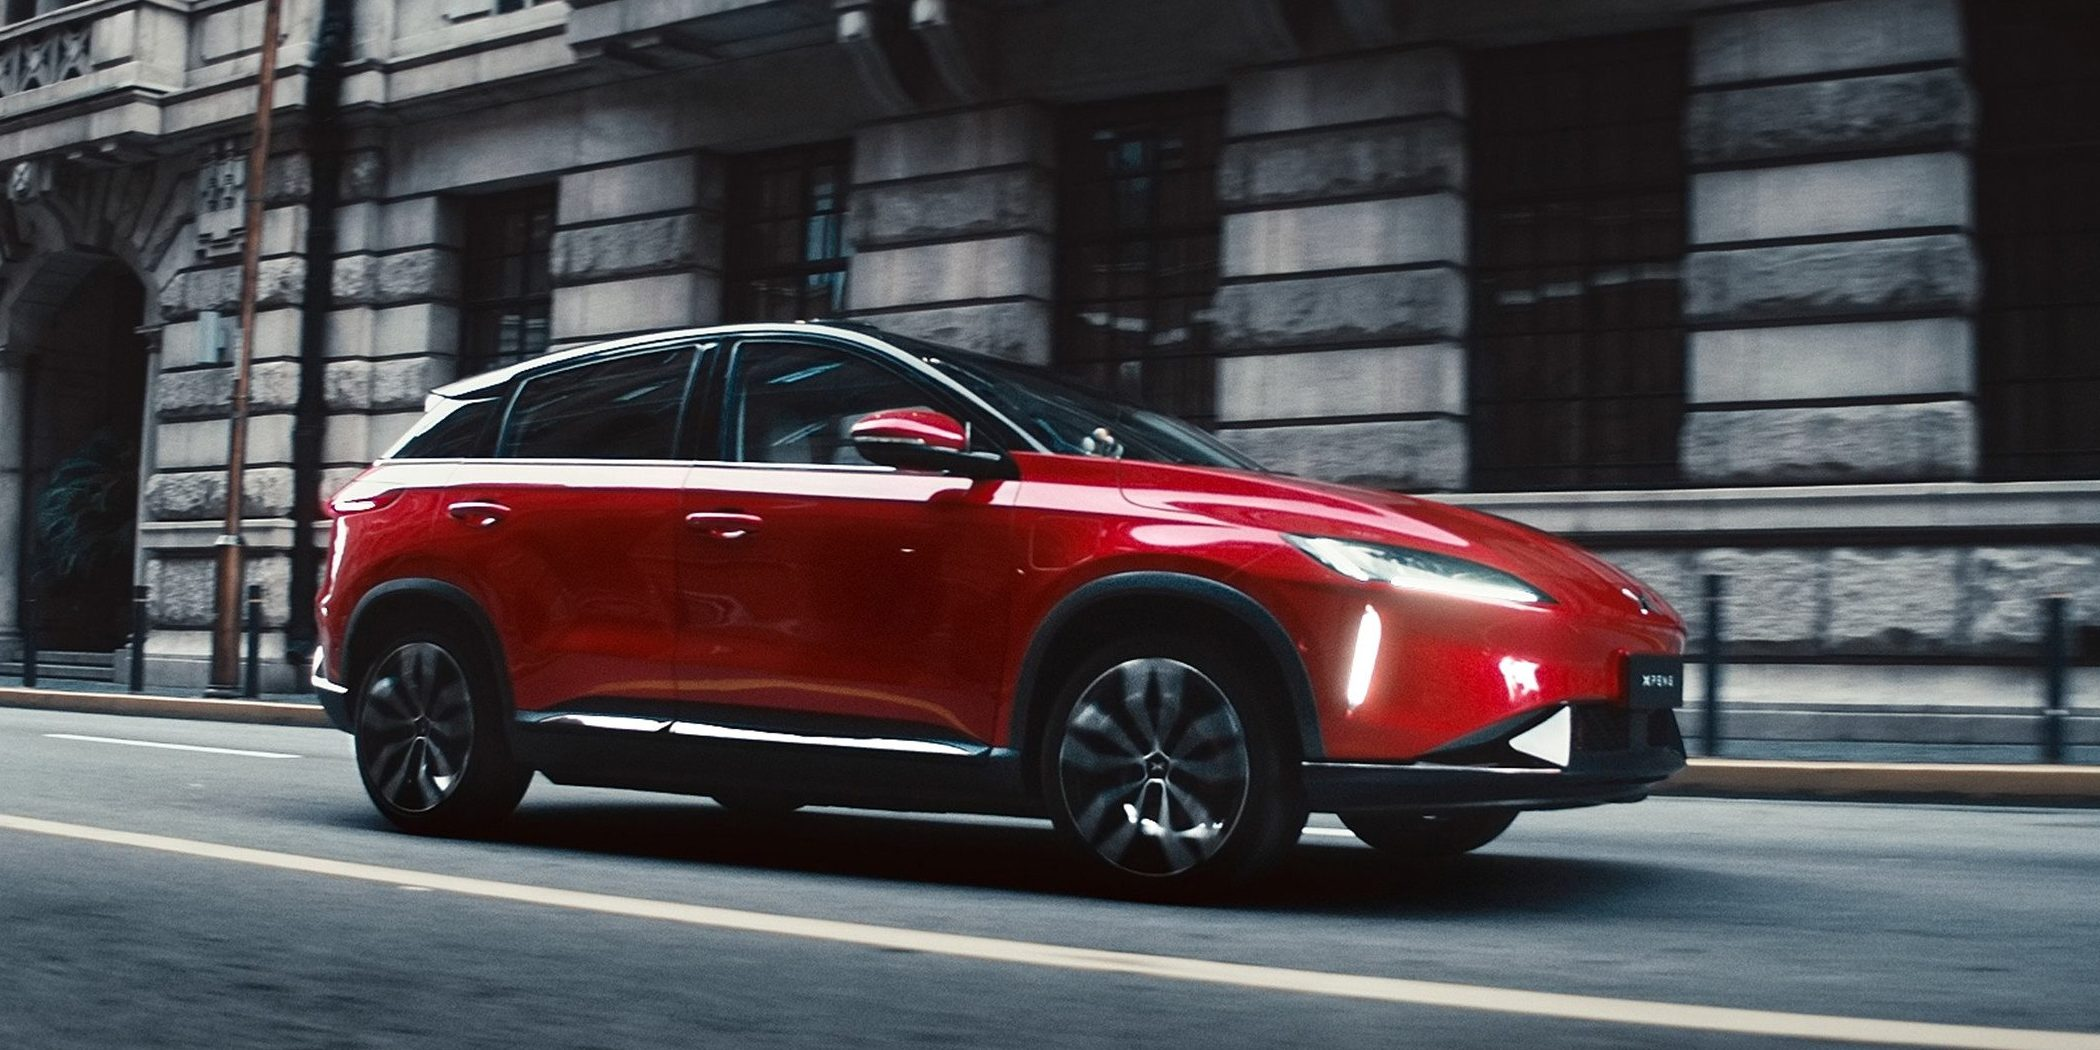 Tesla-inspired EV startup Xiaopeng launches ~$33,000 all-electric SUV